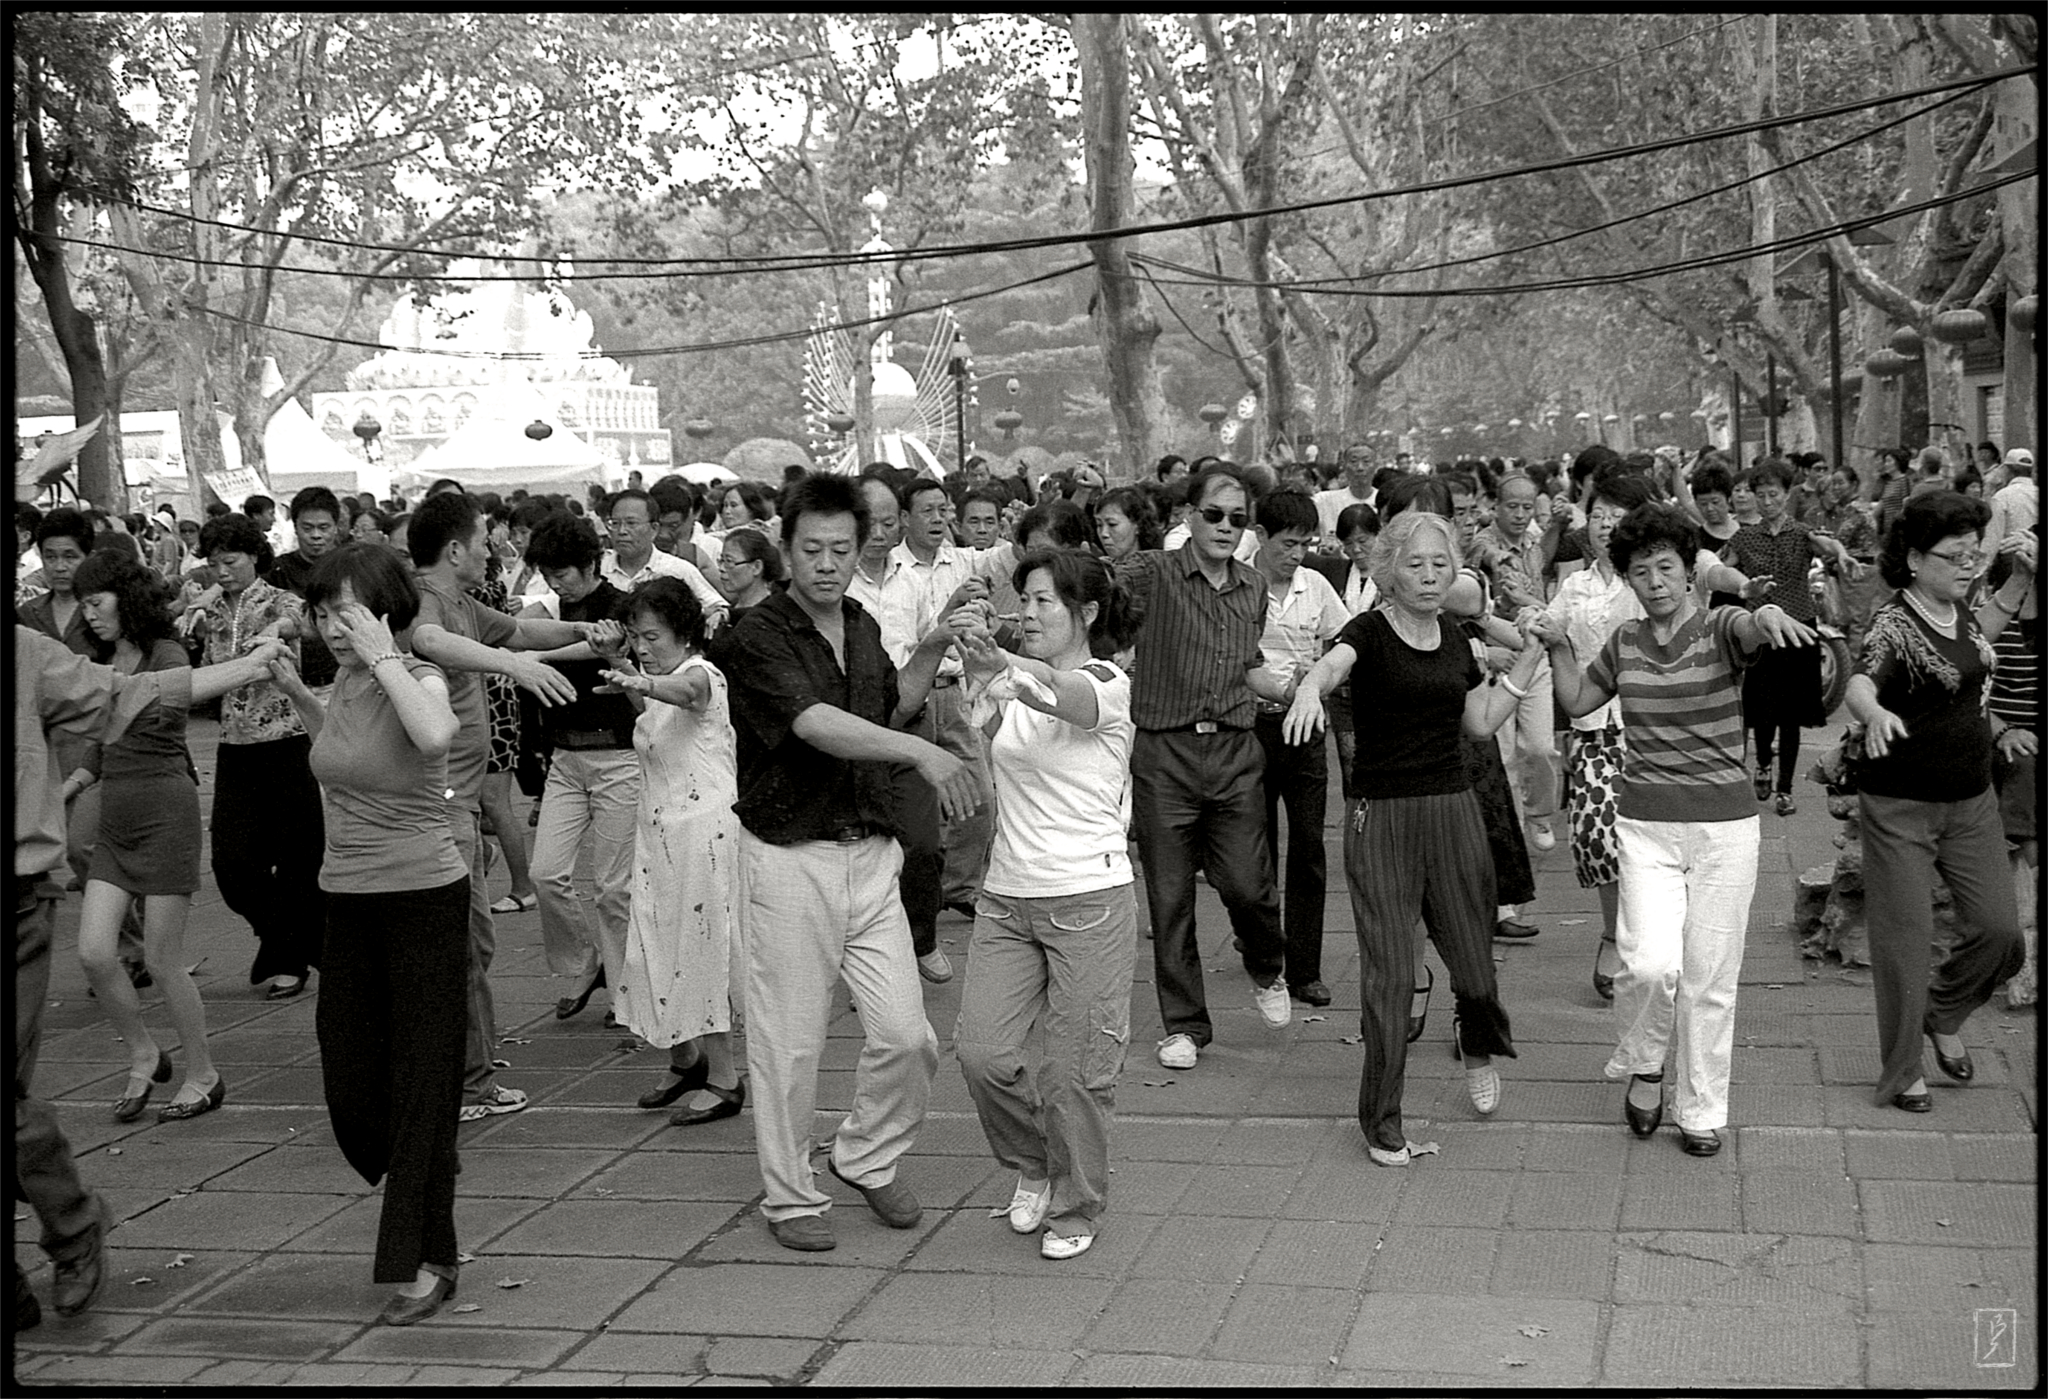 Lu Xun park (鲁迅公园): Public dance group.